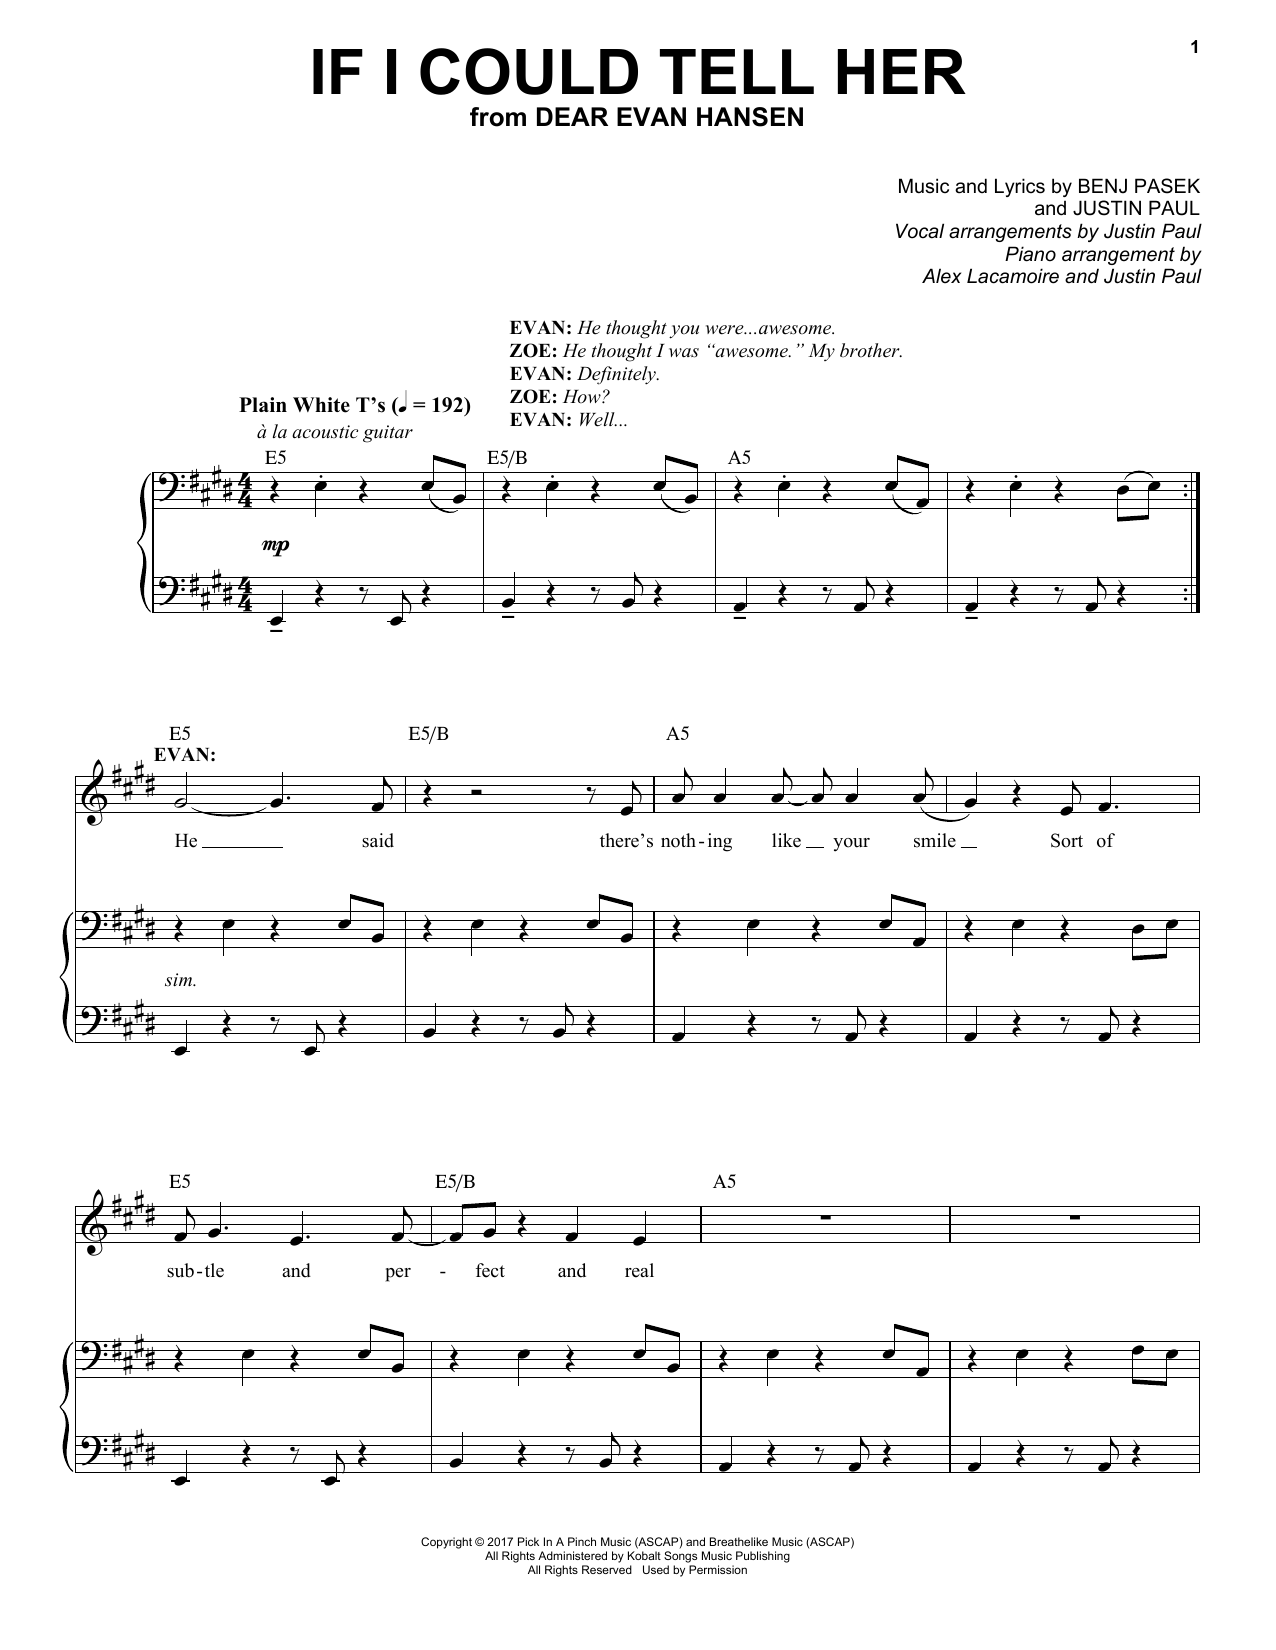 Download Pasek & Paul 'If I Could Tell Her (from Dear Evan Hansen)' Digital Sheet Music Notes & Chords and start playing in minutes